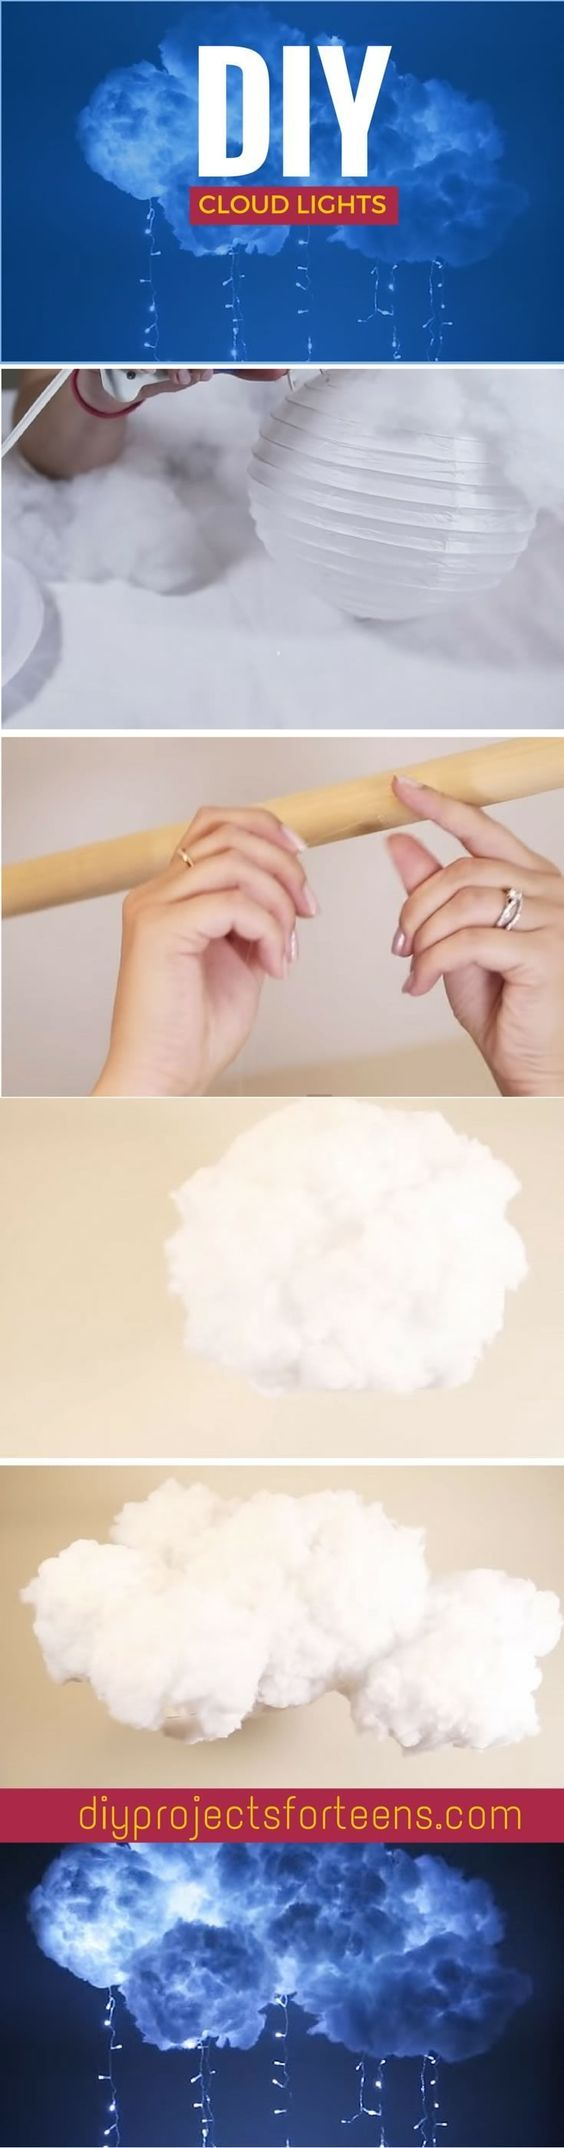 diy magic light cloud fixture